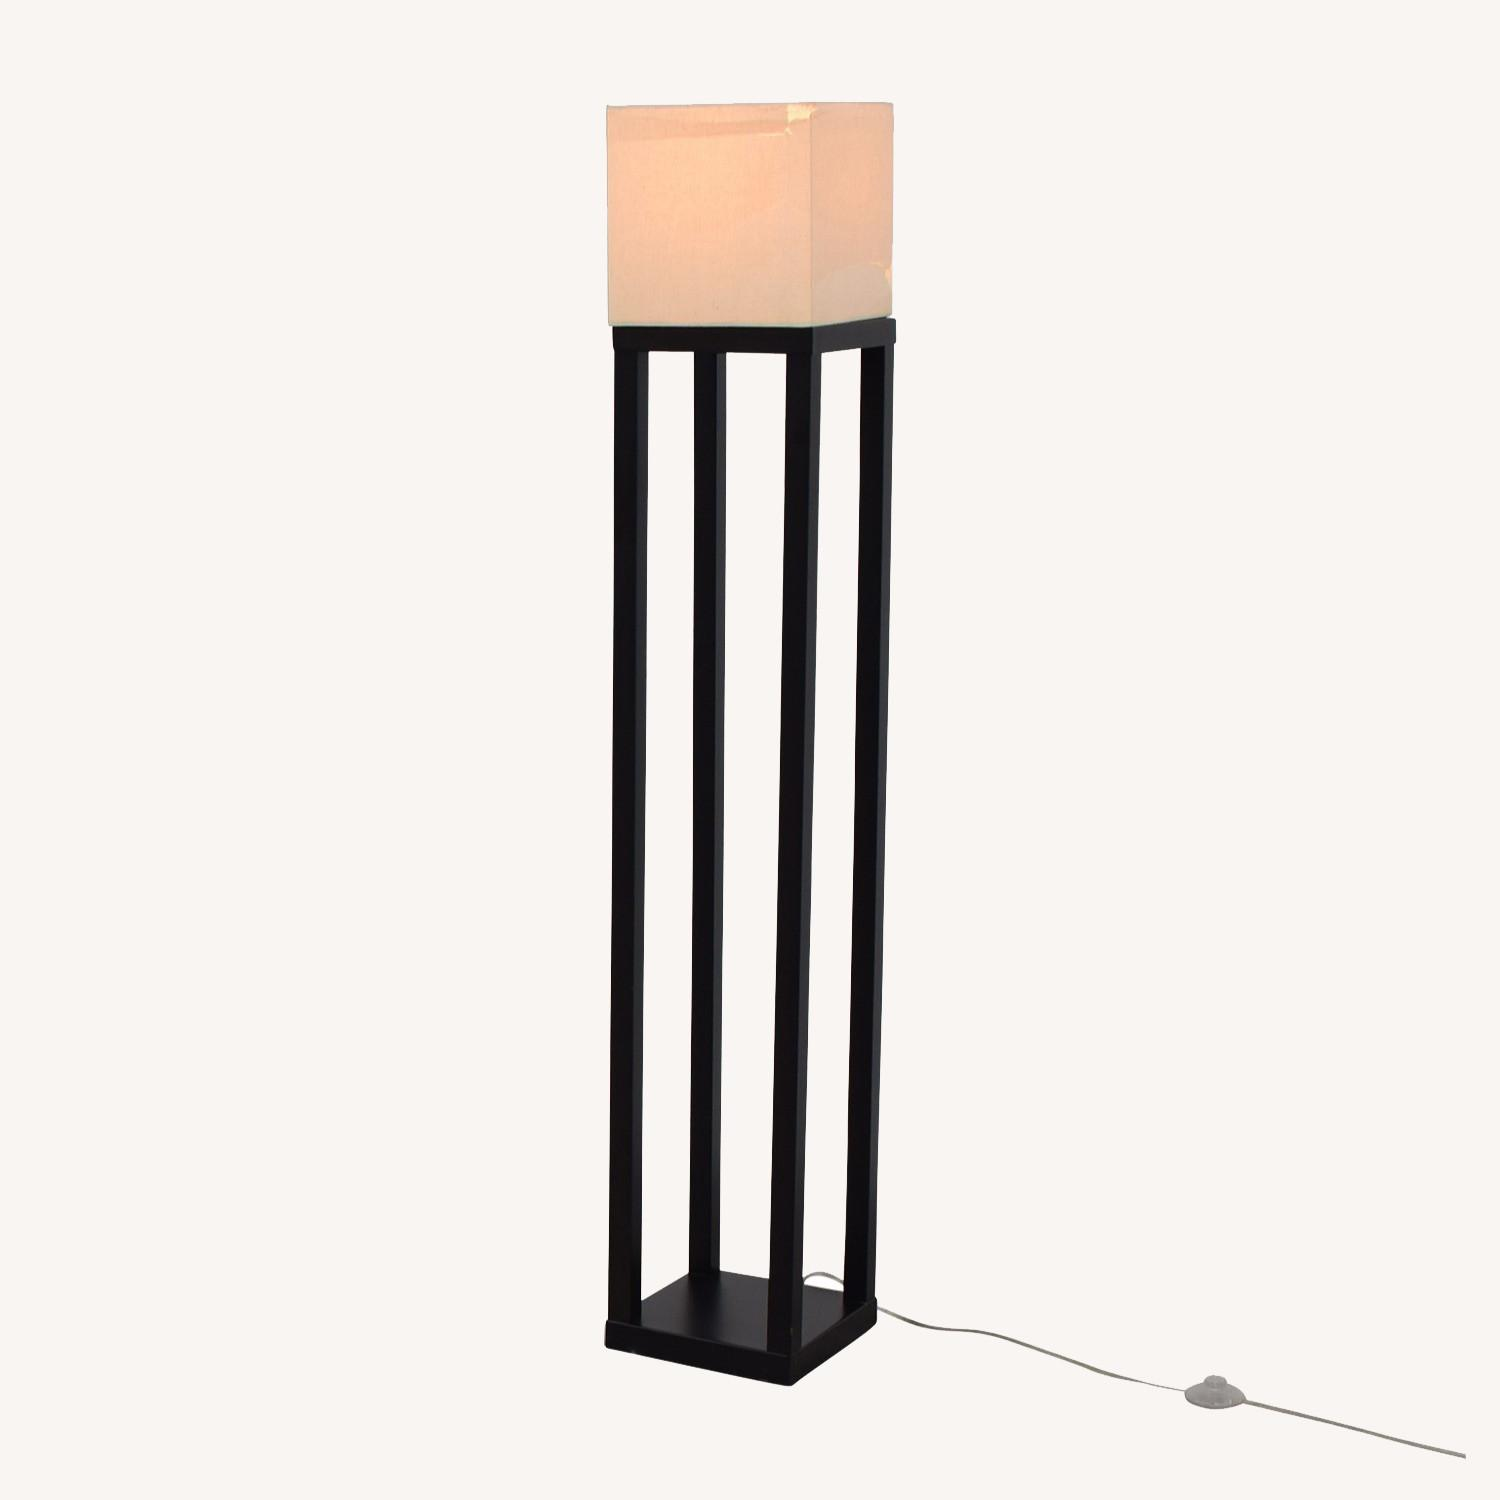 Crate & Barrel Aerin Floor Lamp - image-0